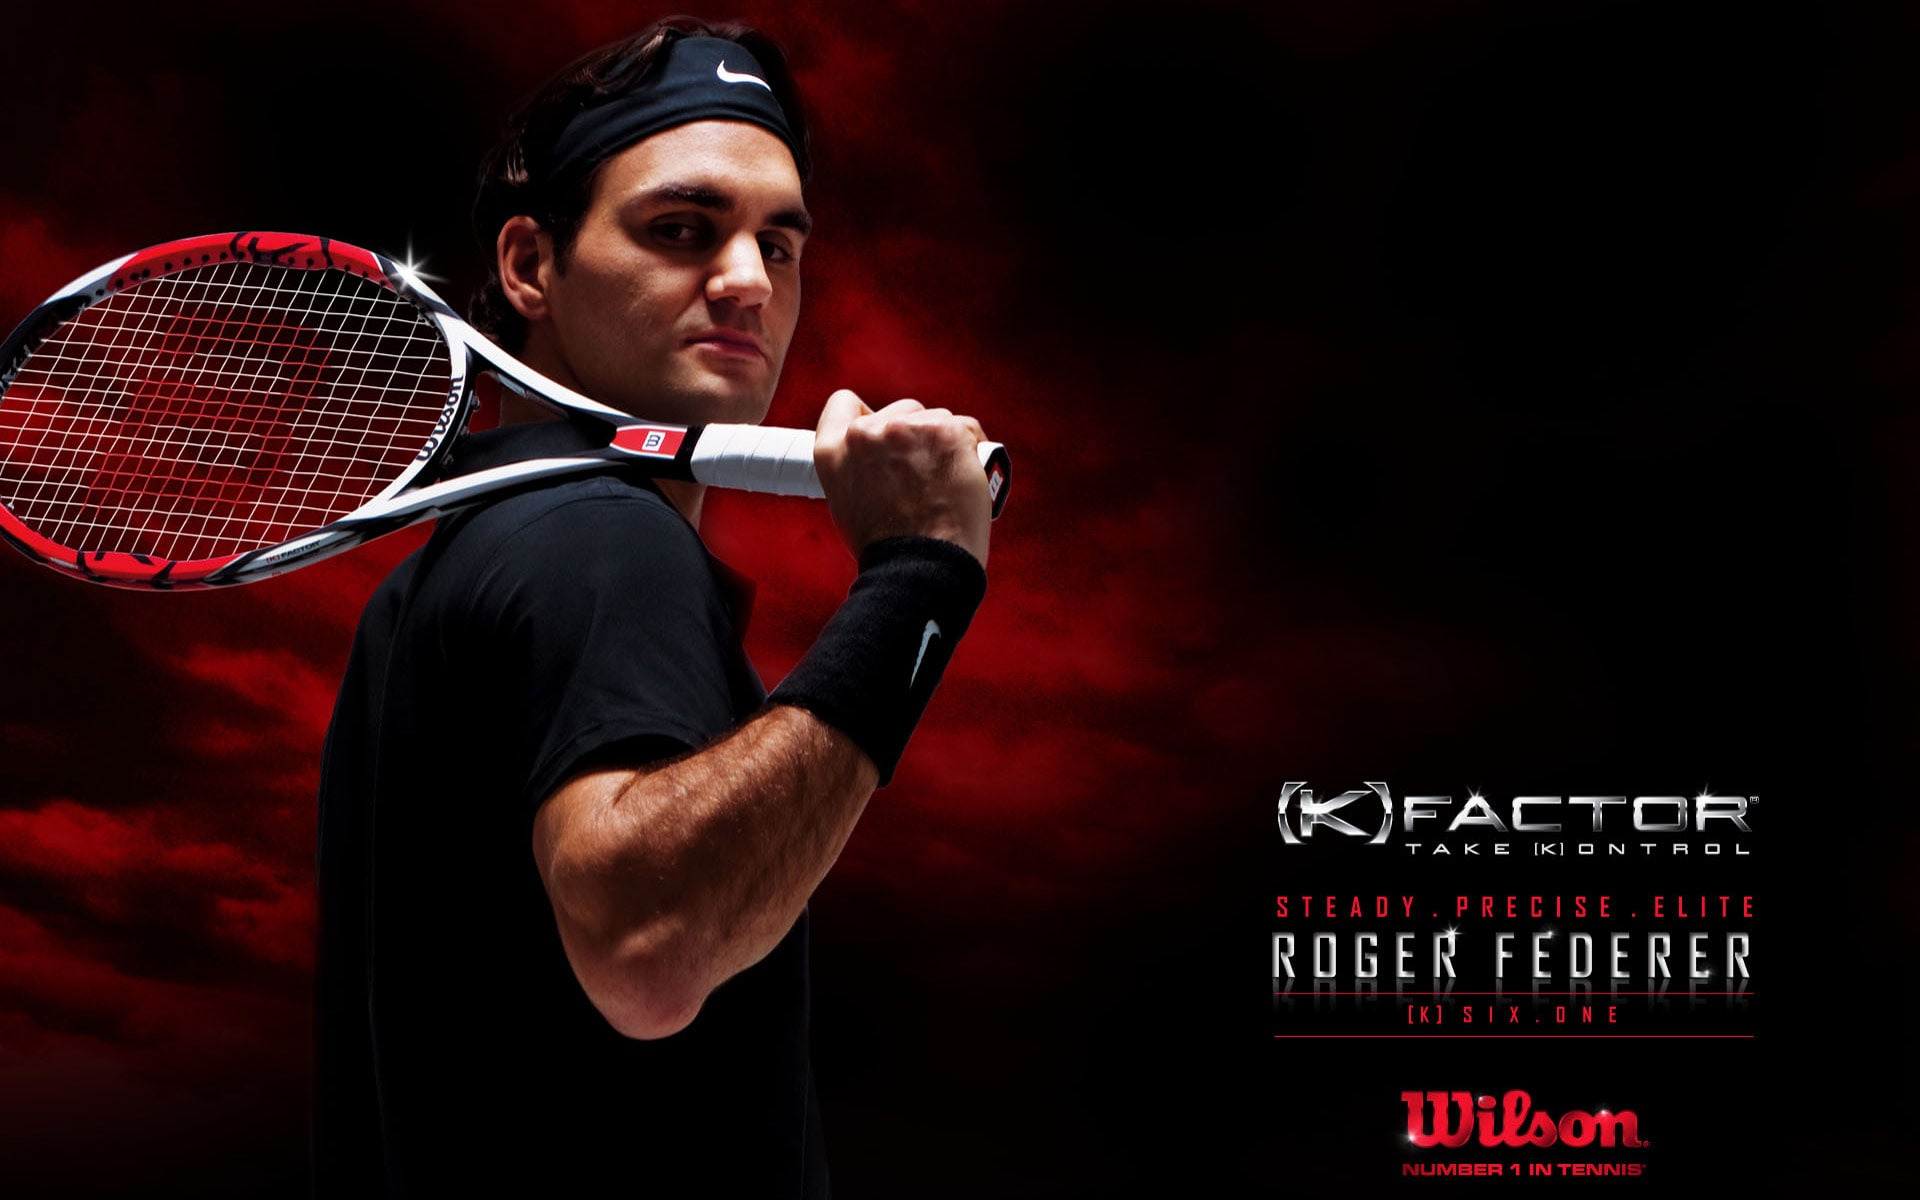 Roger Federer desktop wallpaper